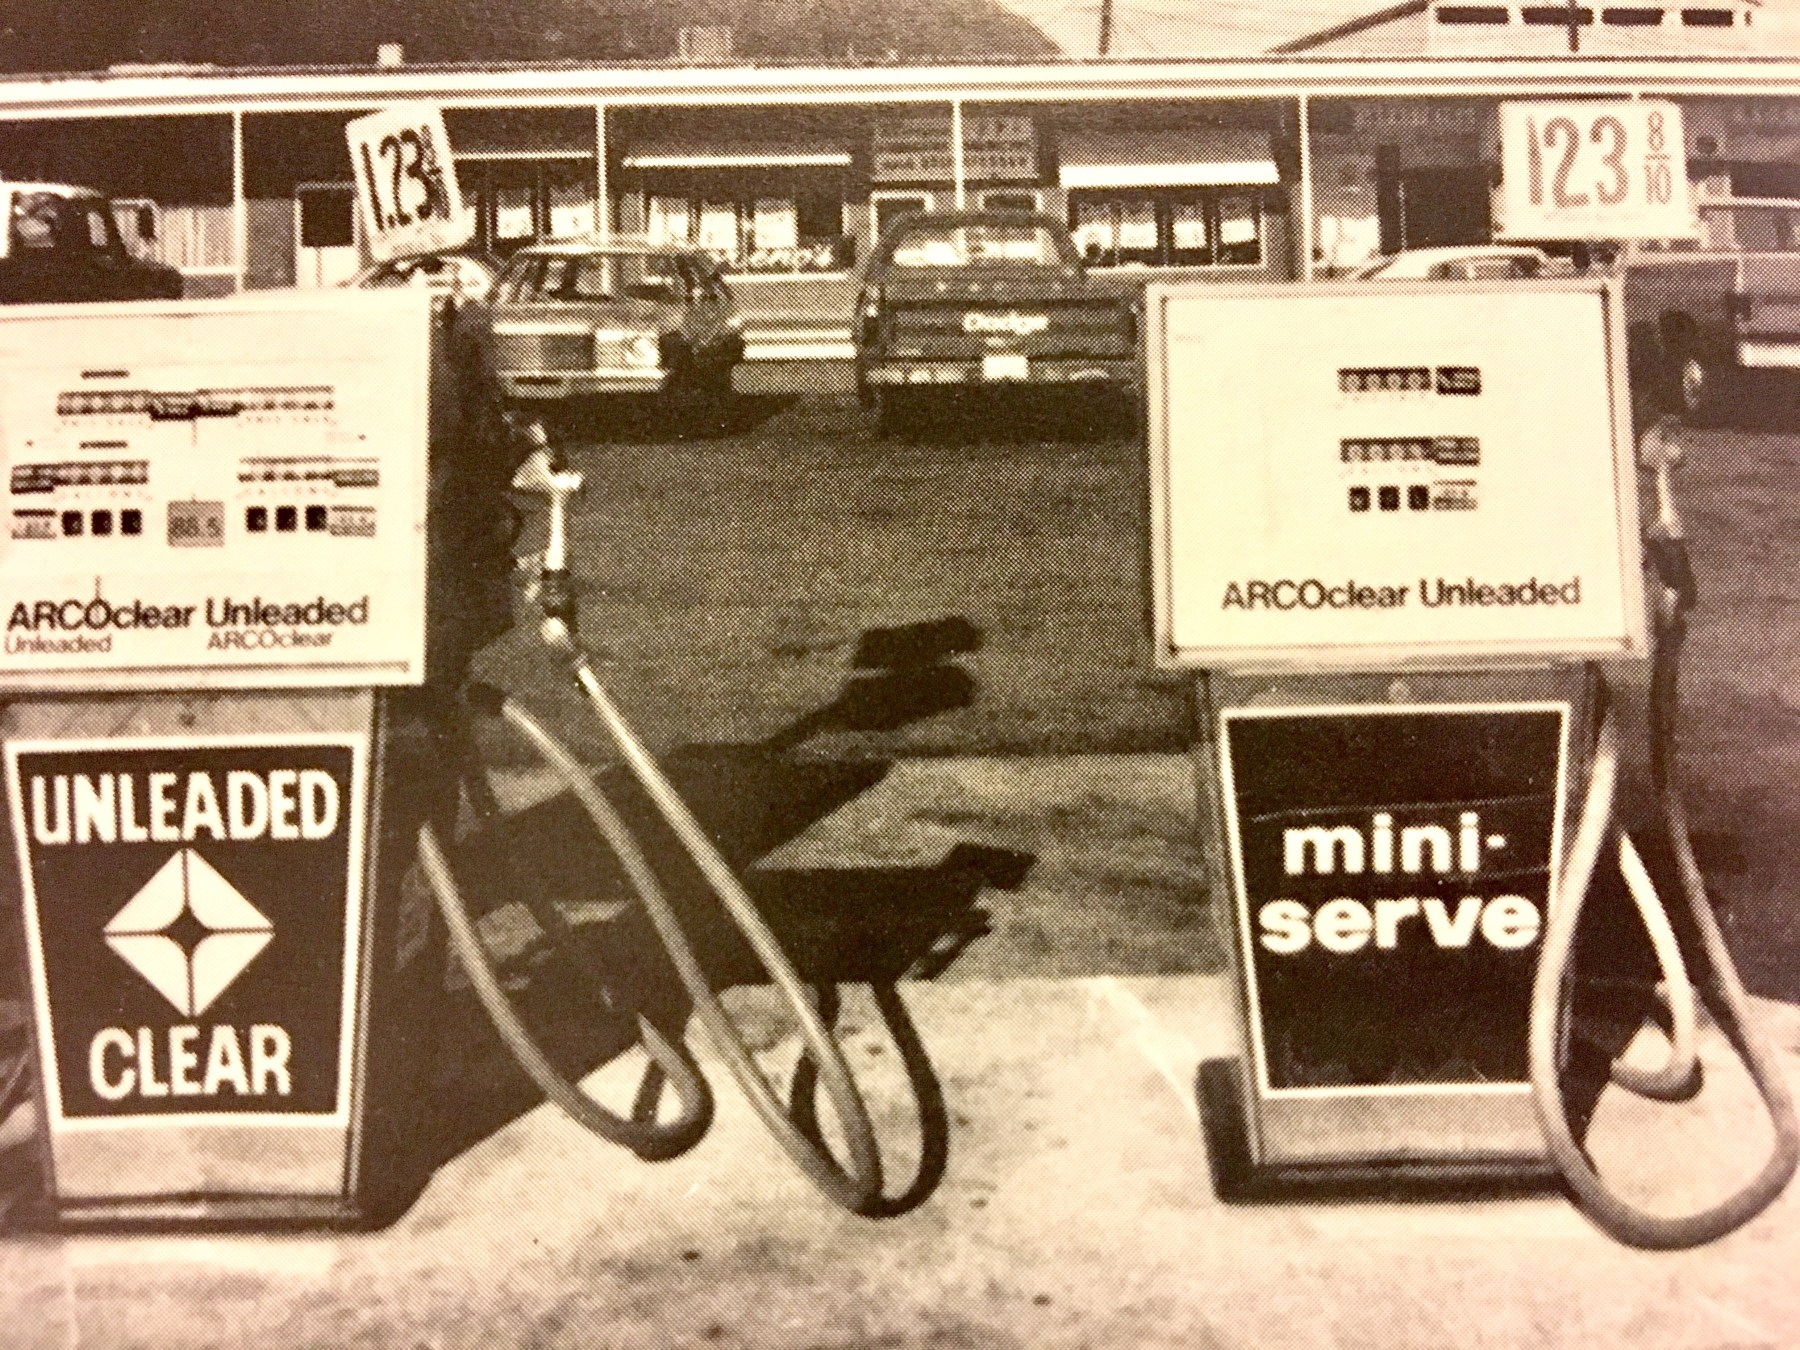 Arco gas station, Burlington, MA early 1970s